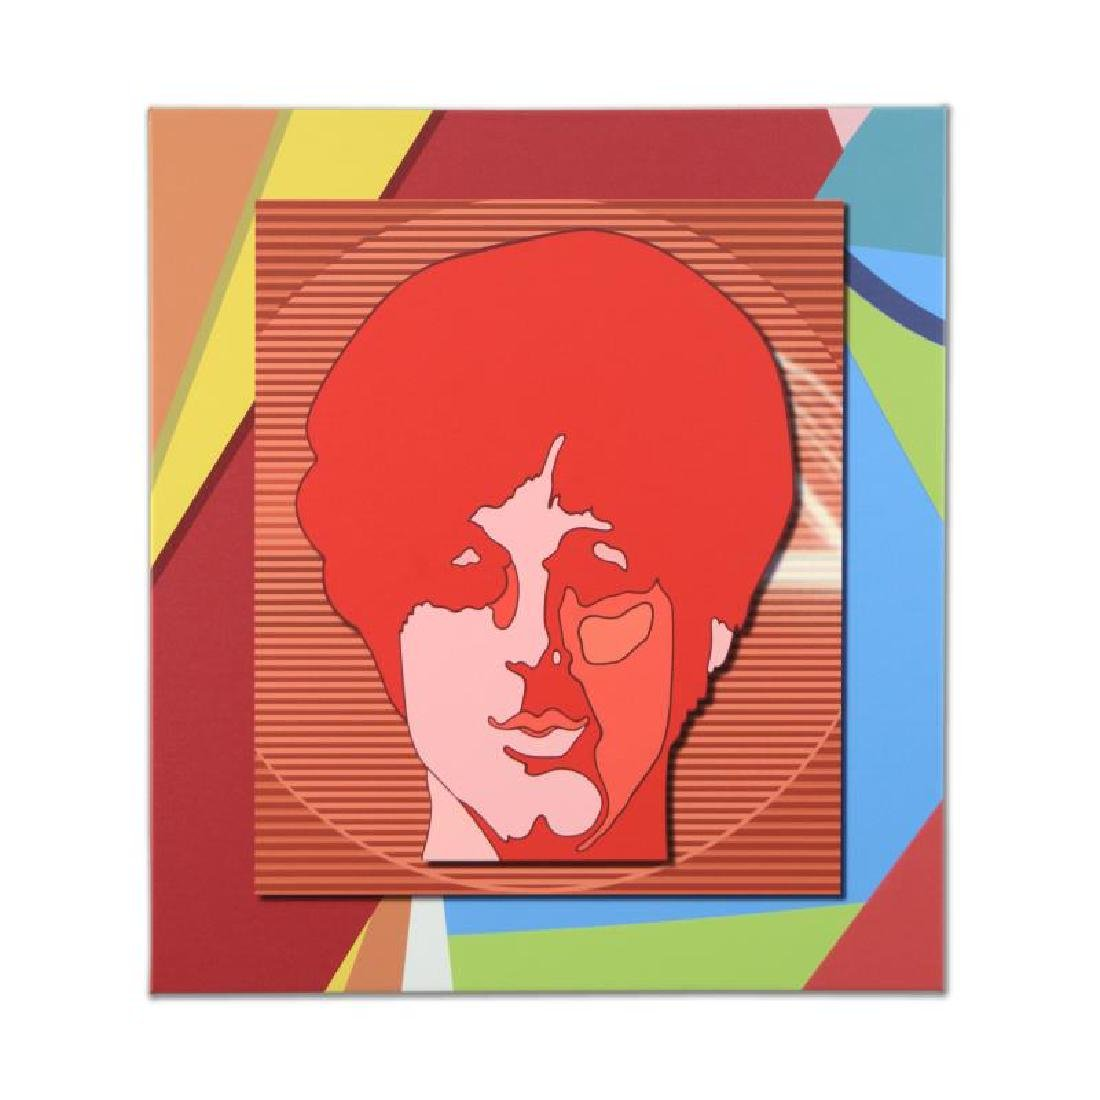 Sea of Science Experience (Set of 4) by Beatles, The - 2